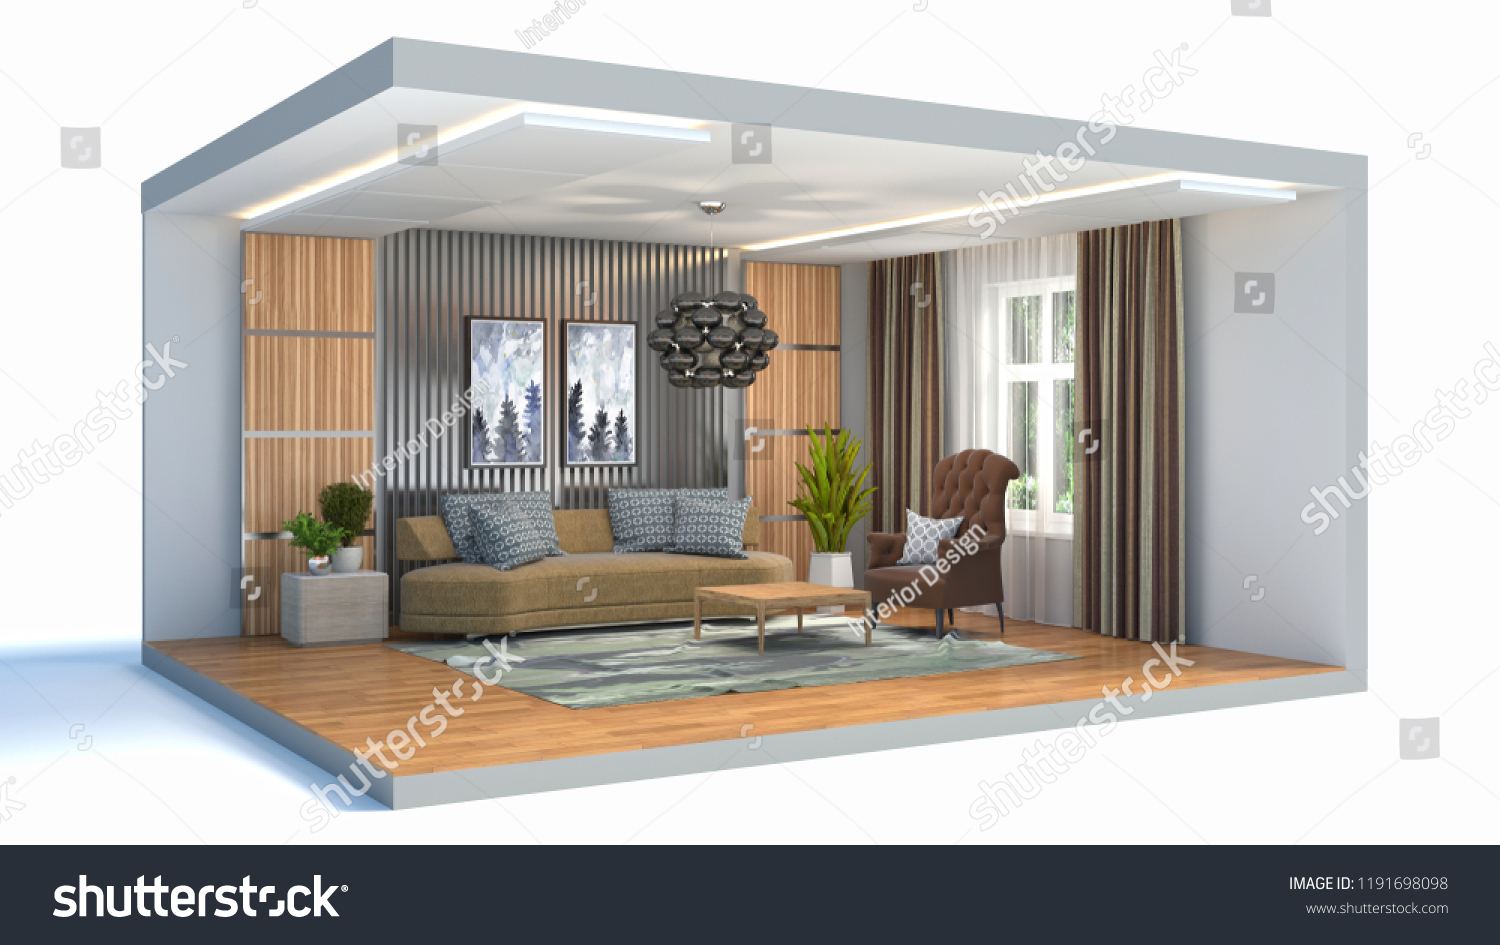 Bettsofa Interio Ch Royalty Free Stock Illustration Of Interior Living Room Box 3 D